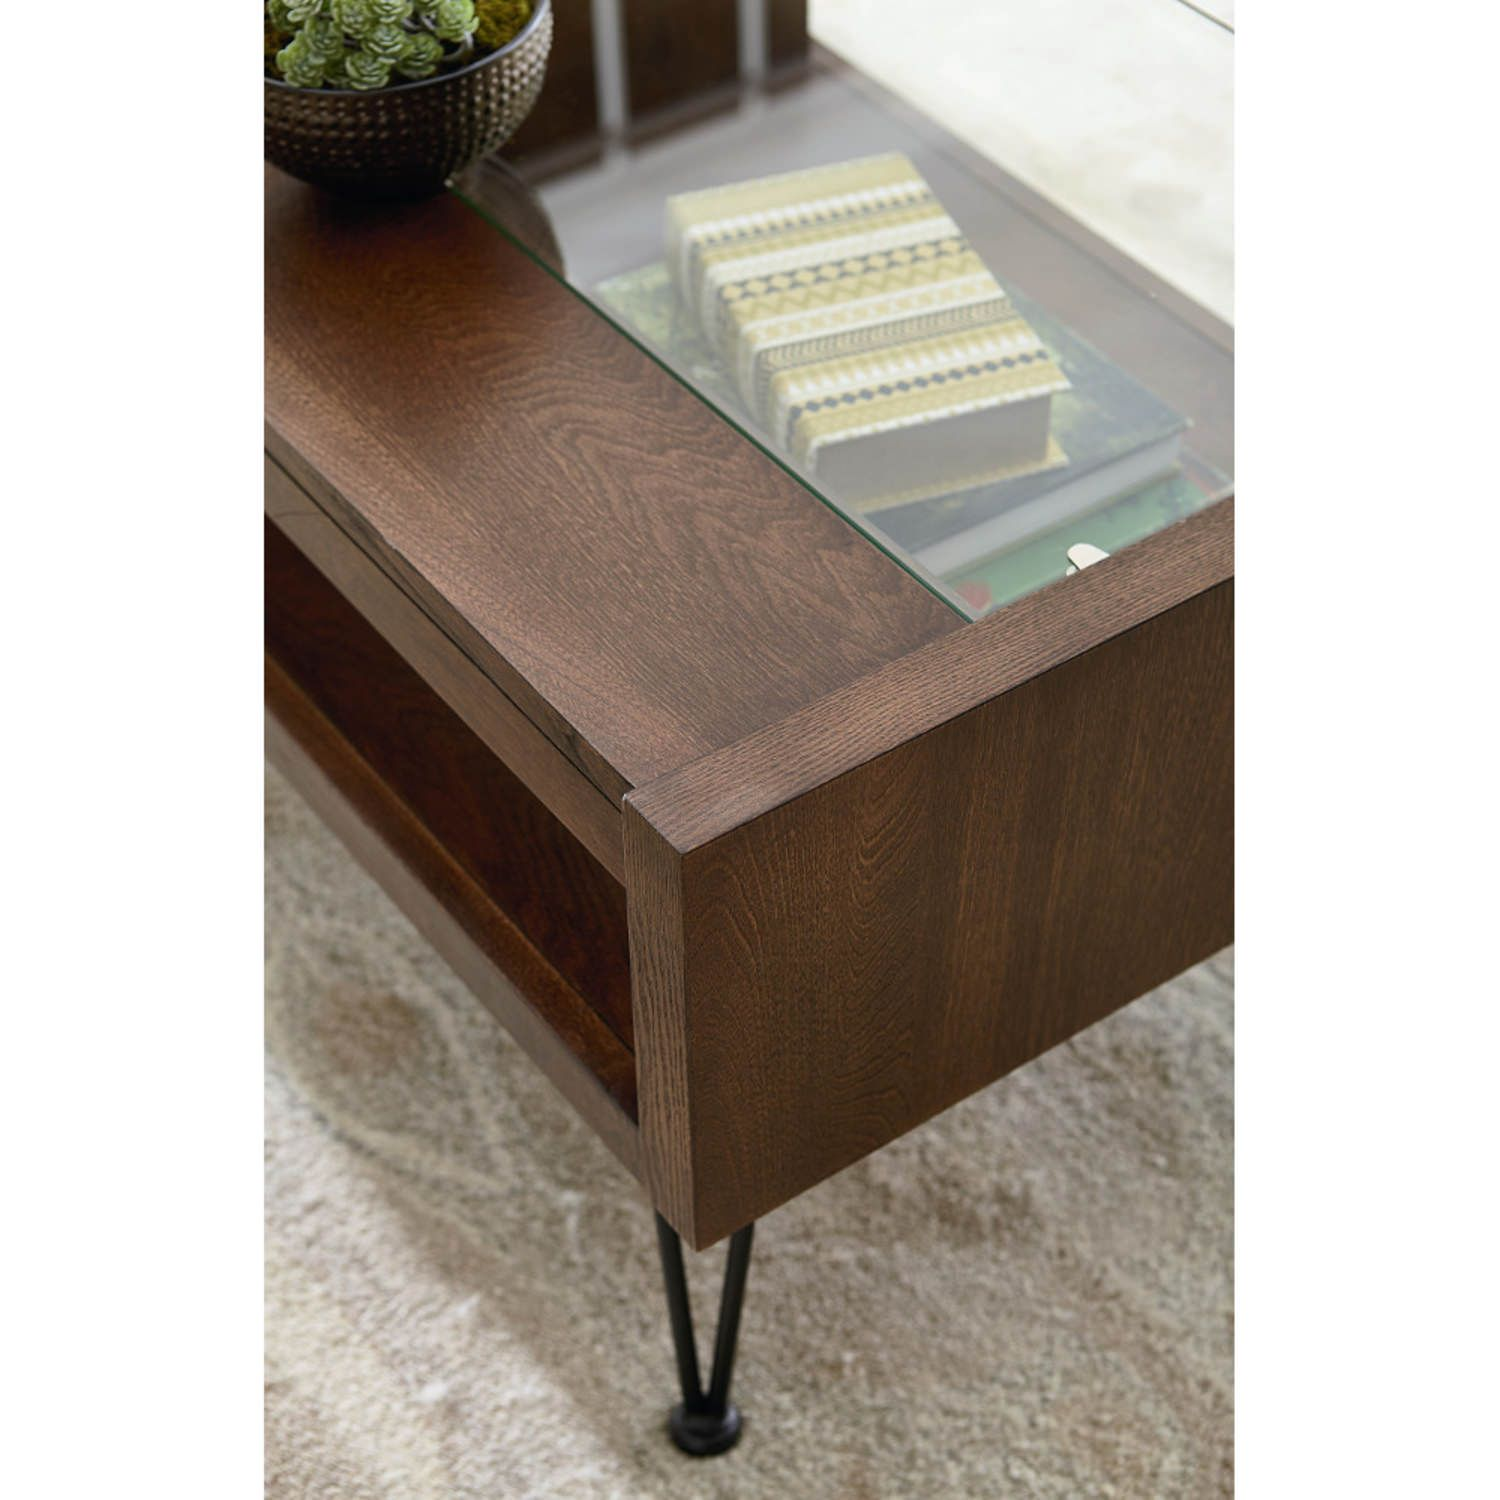 Dalton Coffee Table HOM Furniture Furniture Stores in